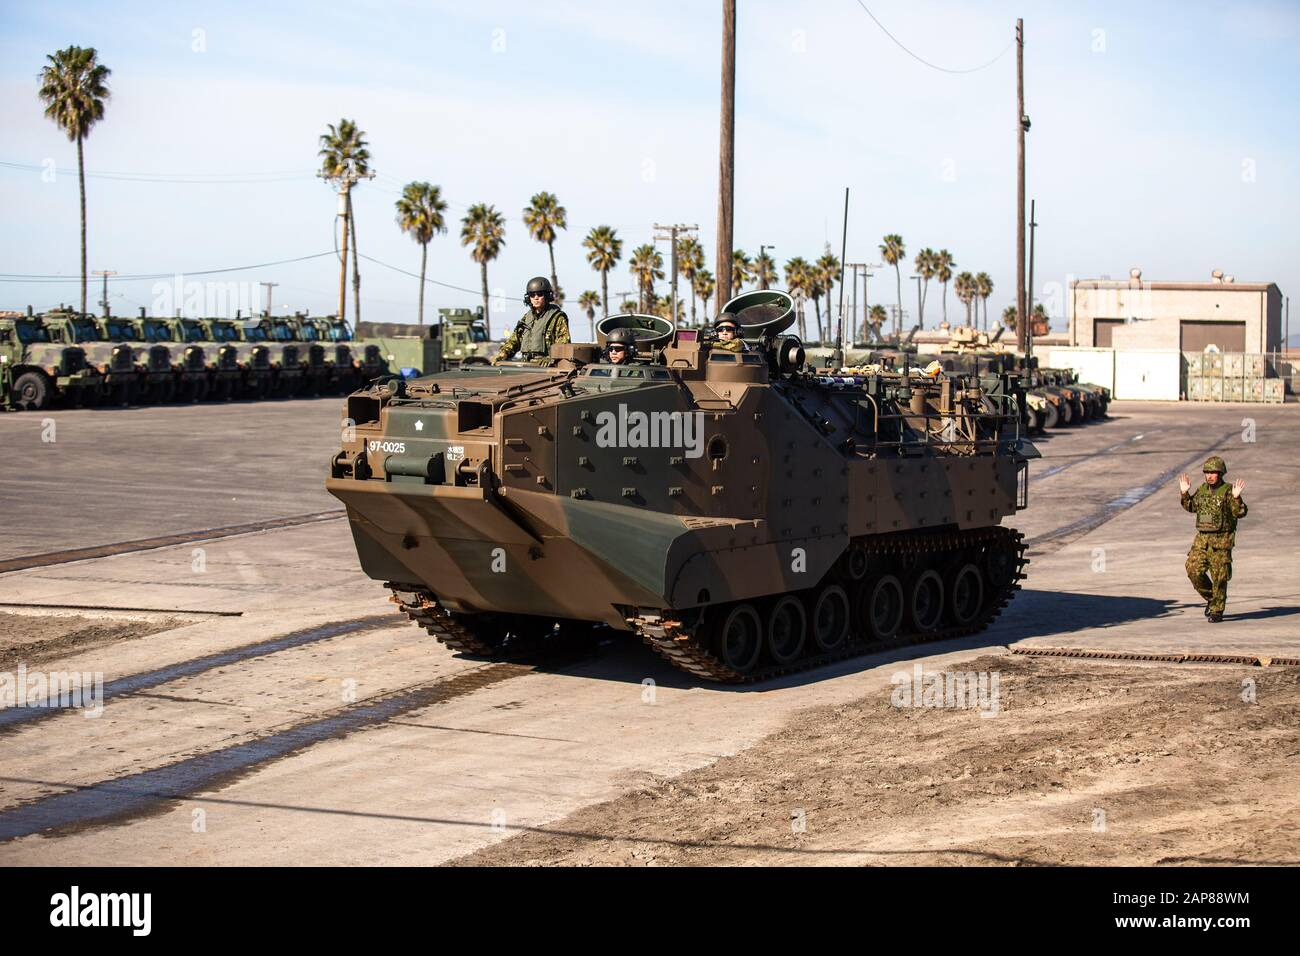 Japan Ground Self Defense Force Amphibious Assault Vehicle Stock